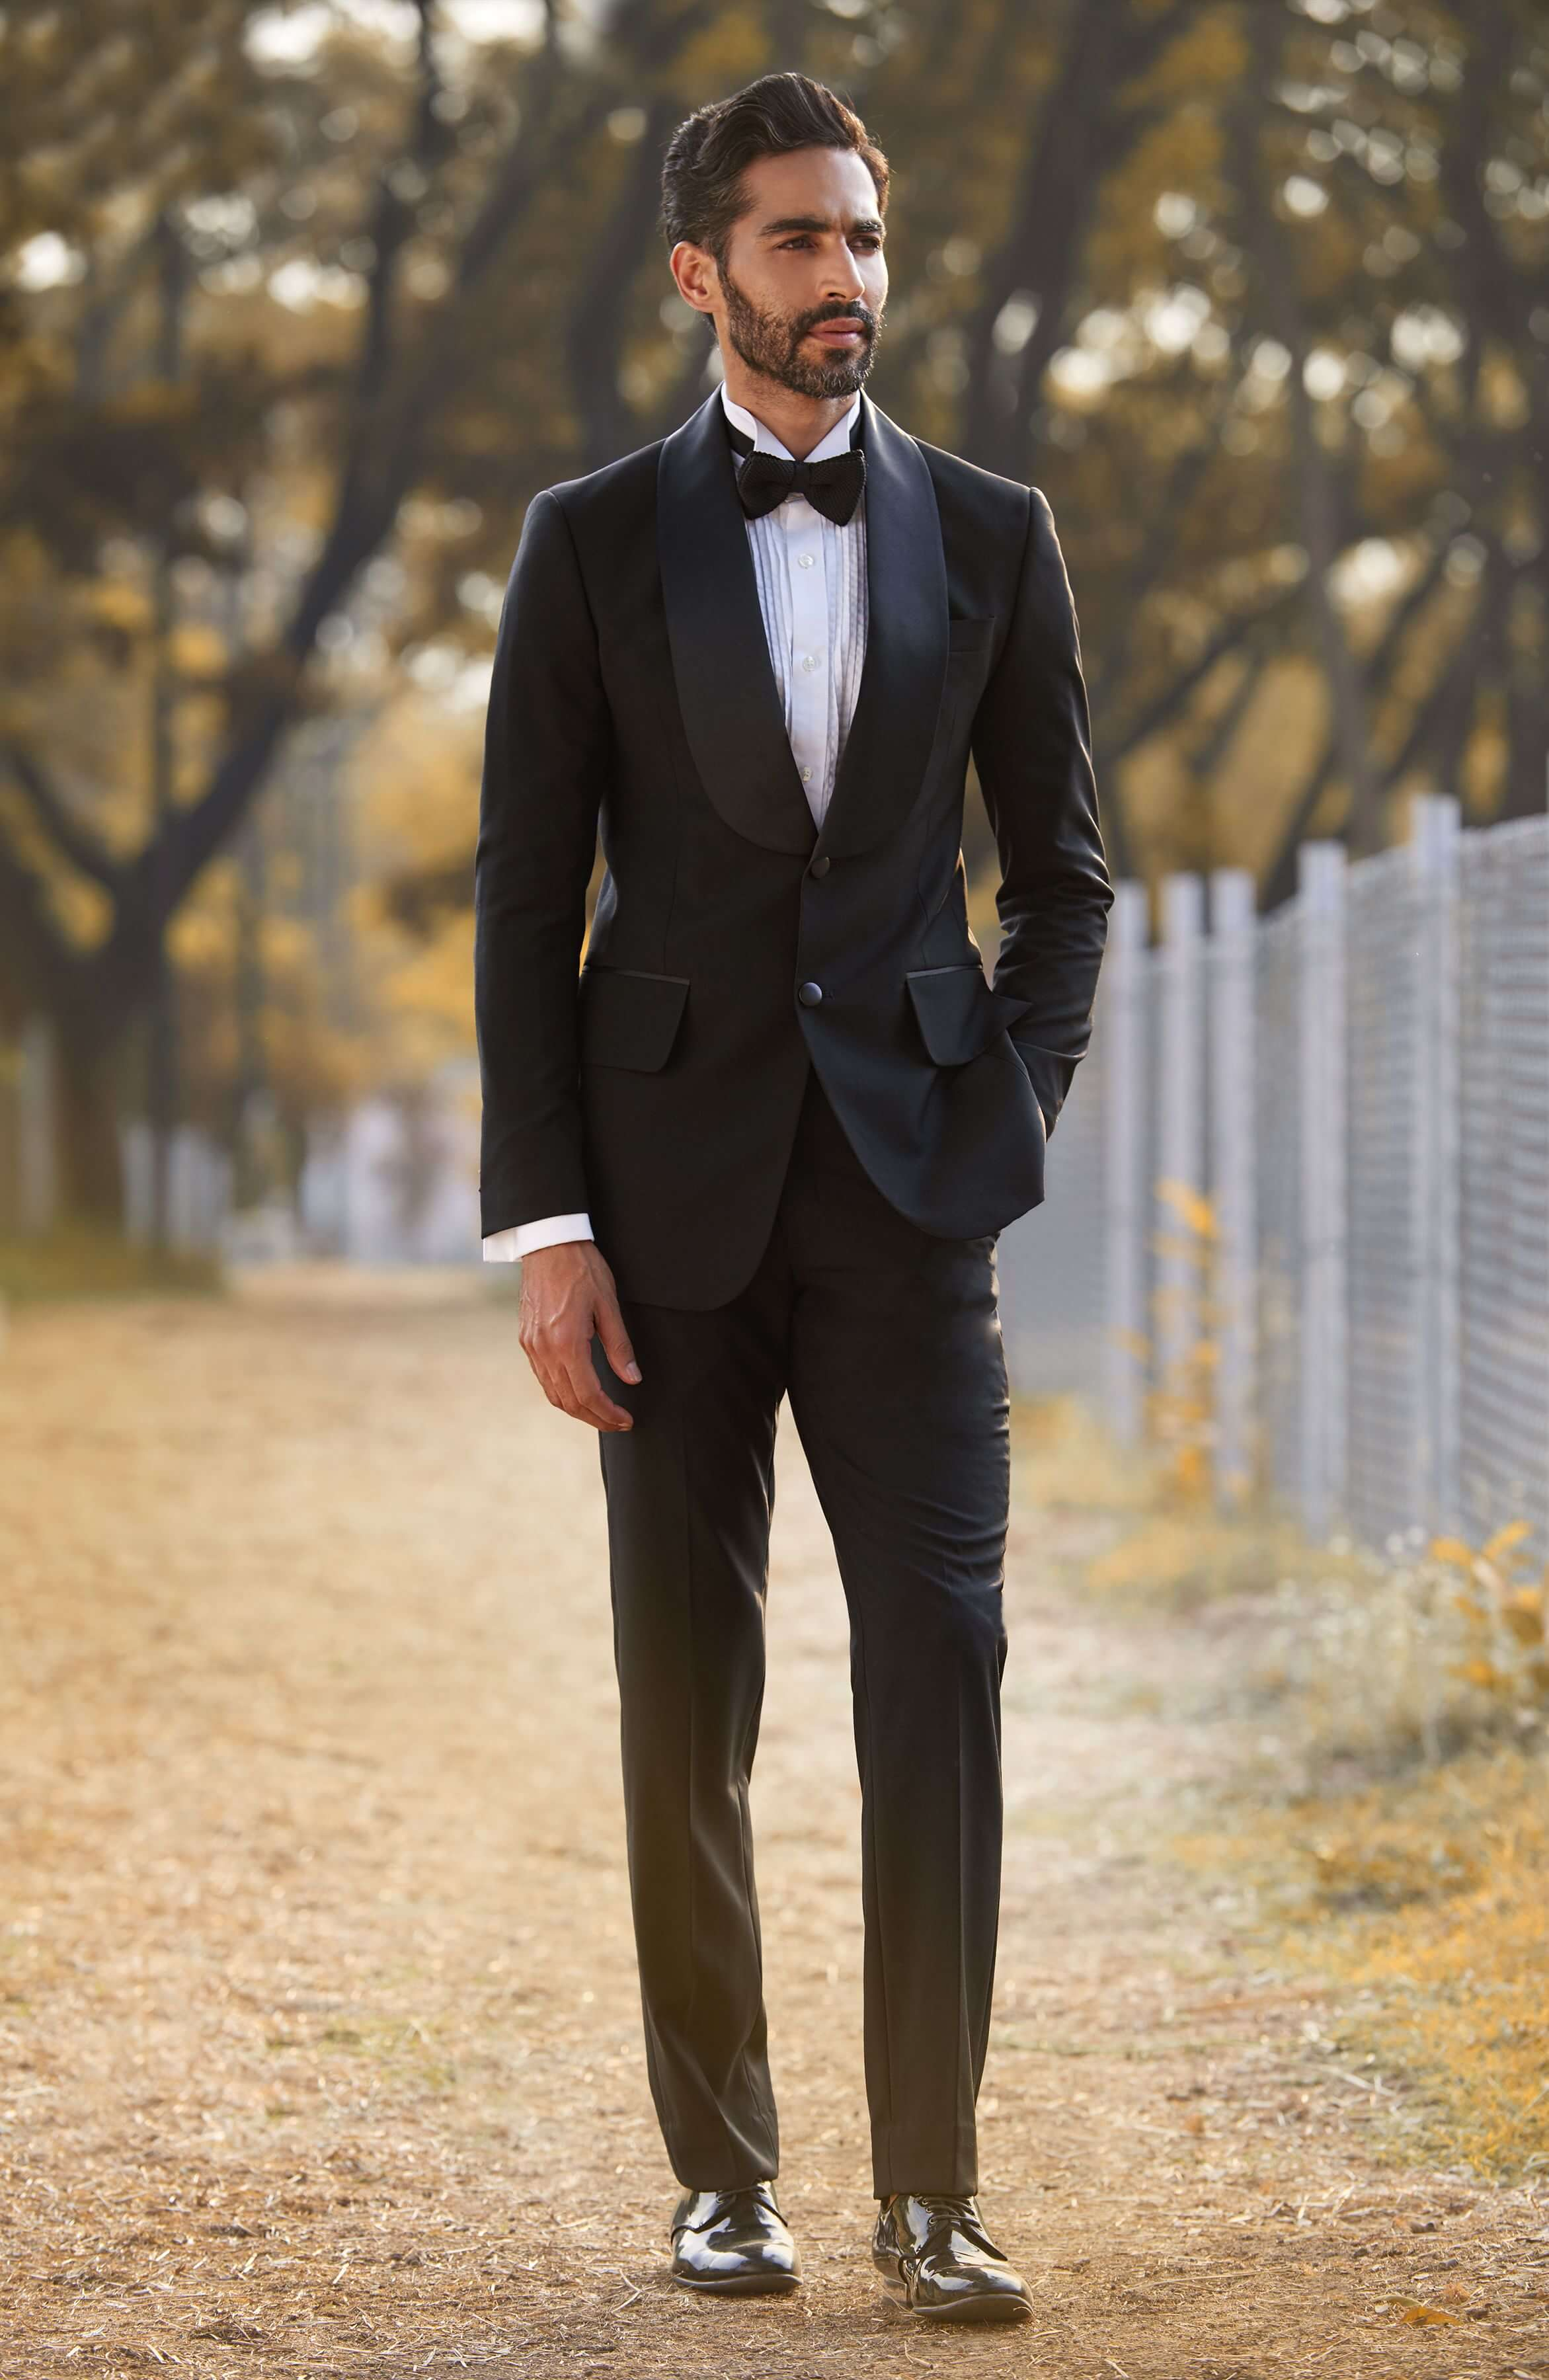 Classic Tuxedo with a wide shawl collar and pockets.